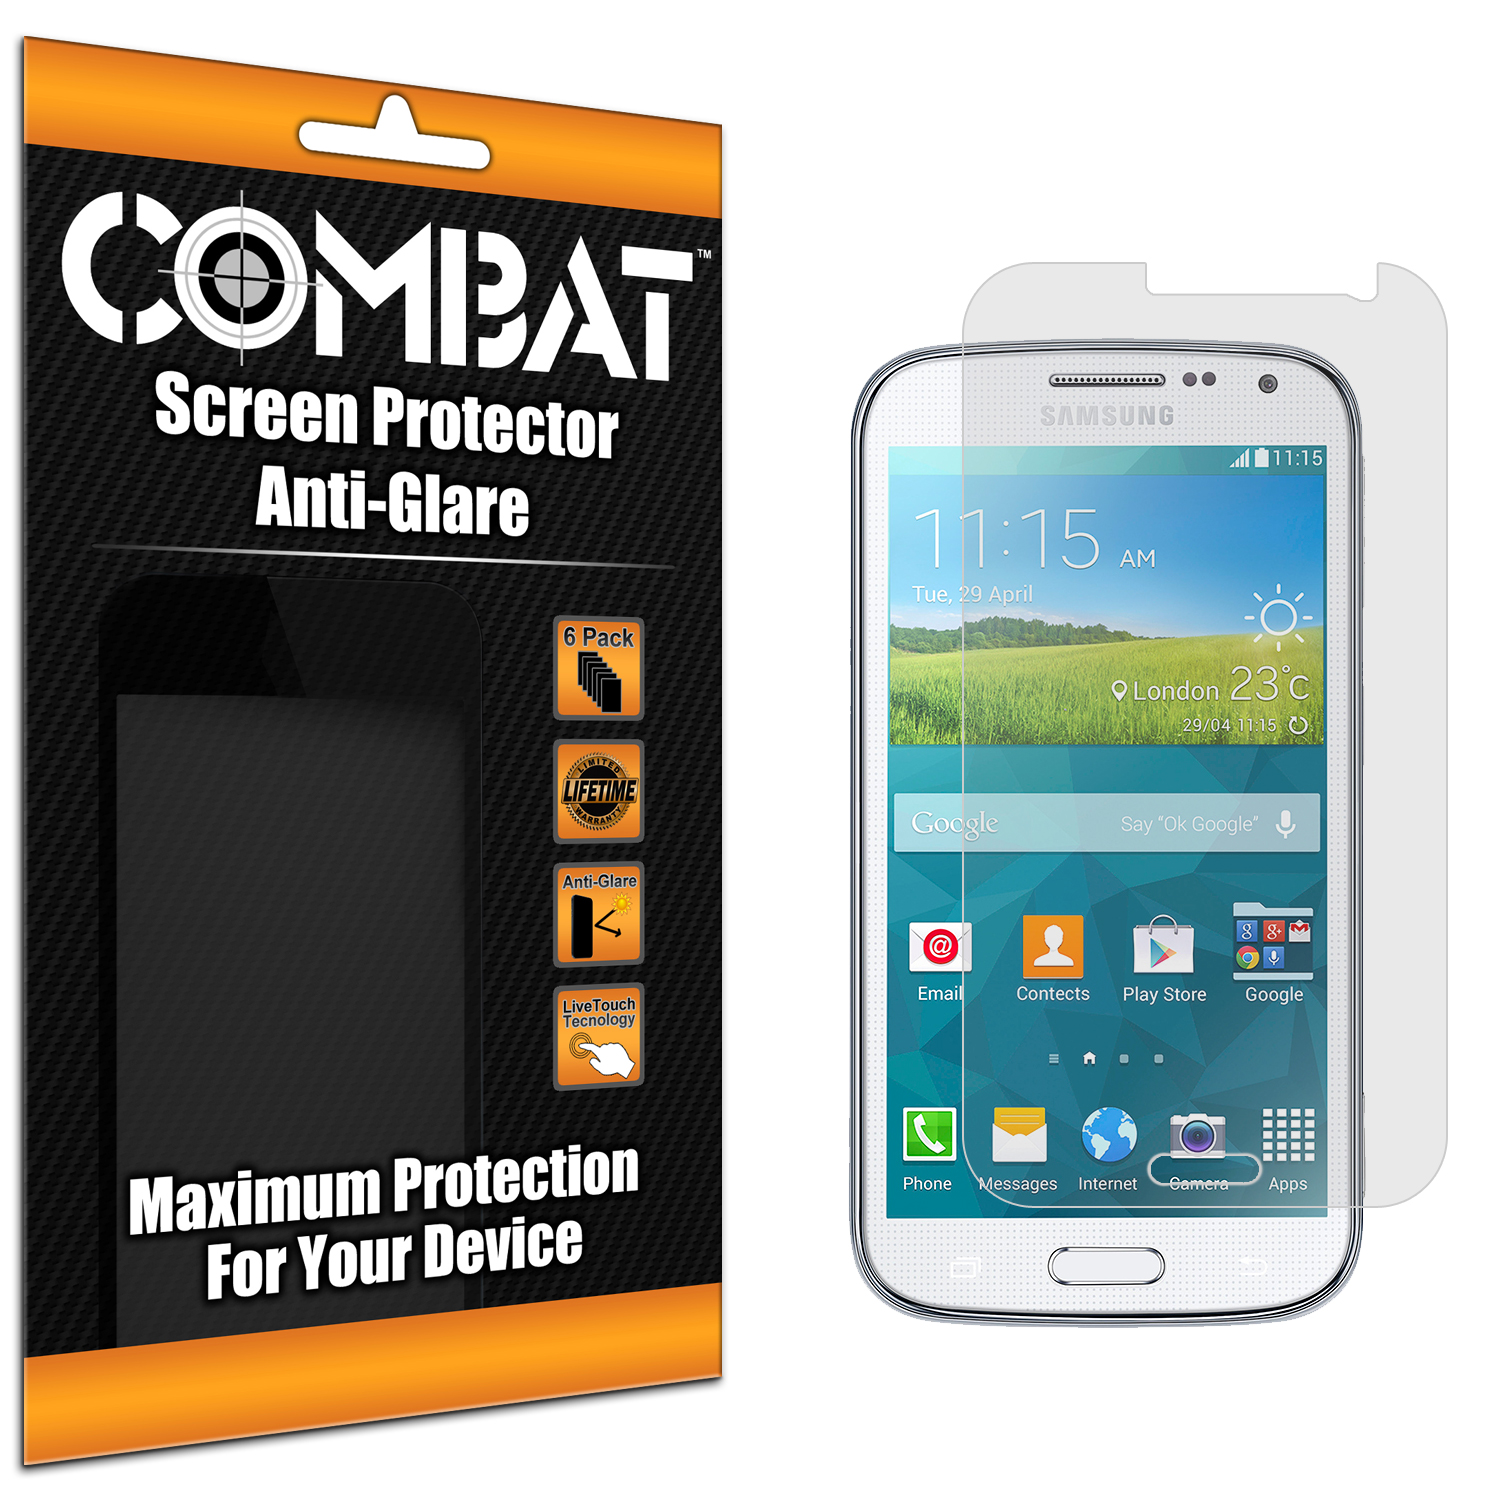 Samsung Galaxy K Zoom Combat 6 Pack Anti-Glare Matte Screen Protector